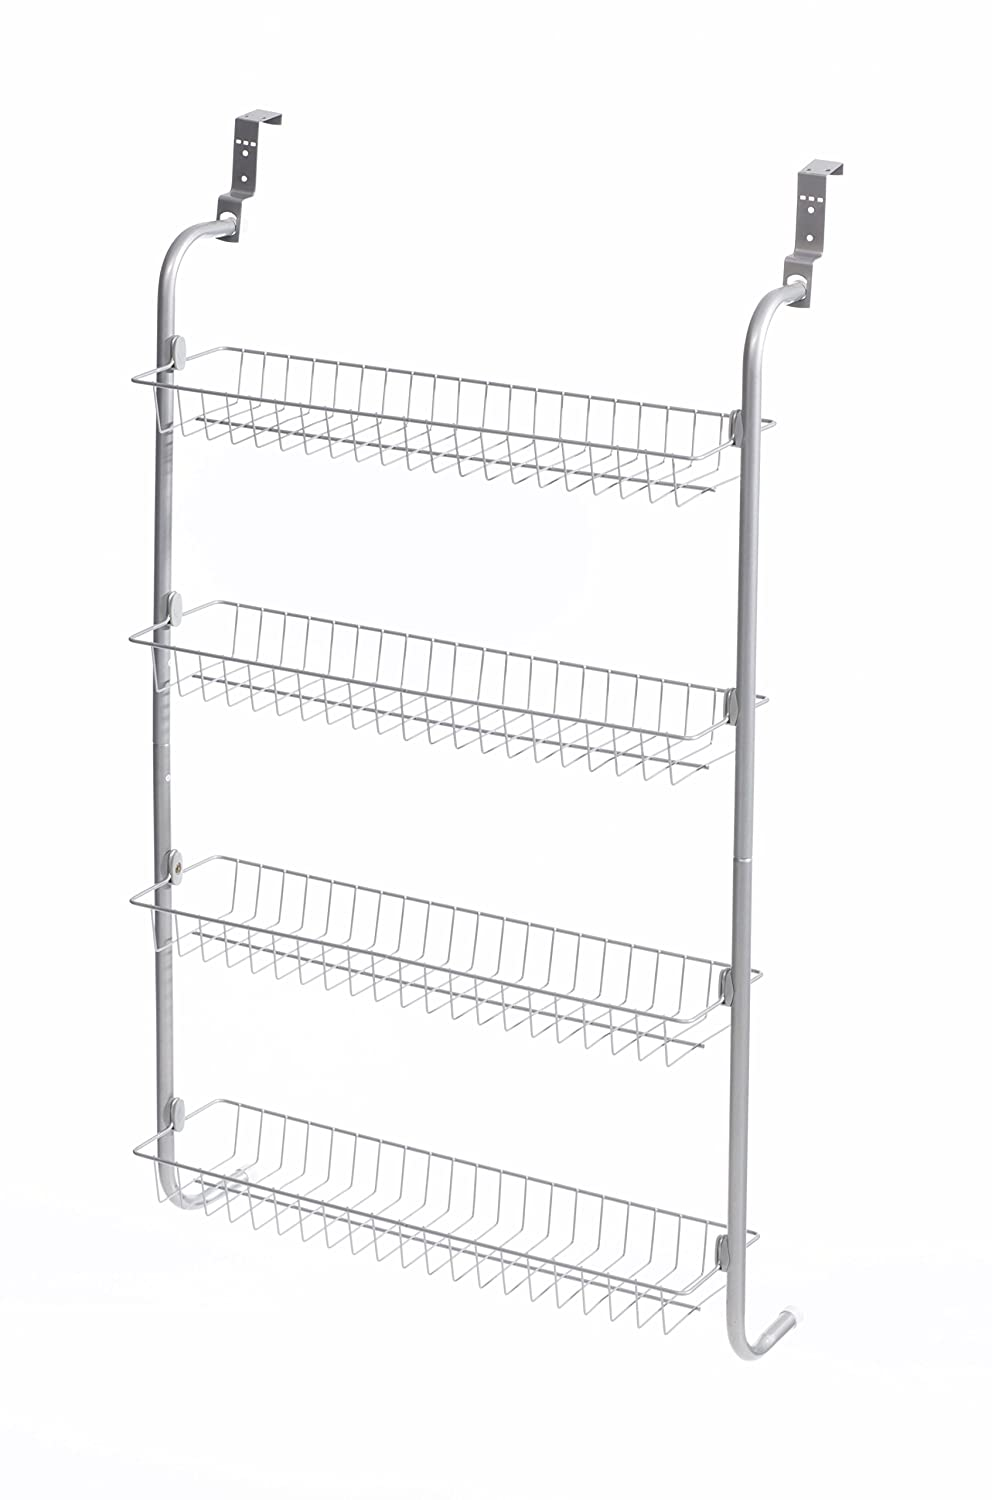 DIRECT ONLINE HOUSEWARE 4-Tier Over Door Hanging Rack/Shelves for Pantry or Storage Cupboard, Grey RICOMEX UK LTD RBW1502